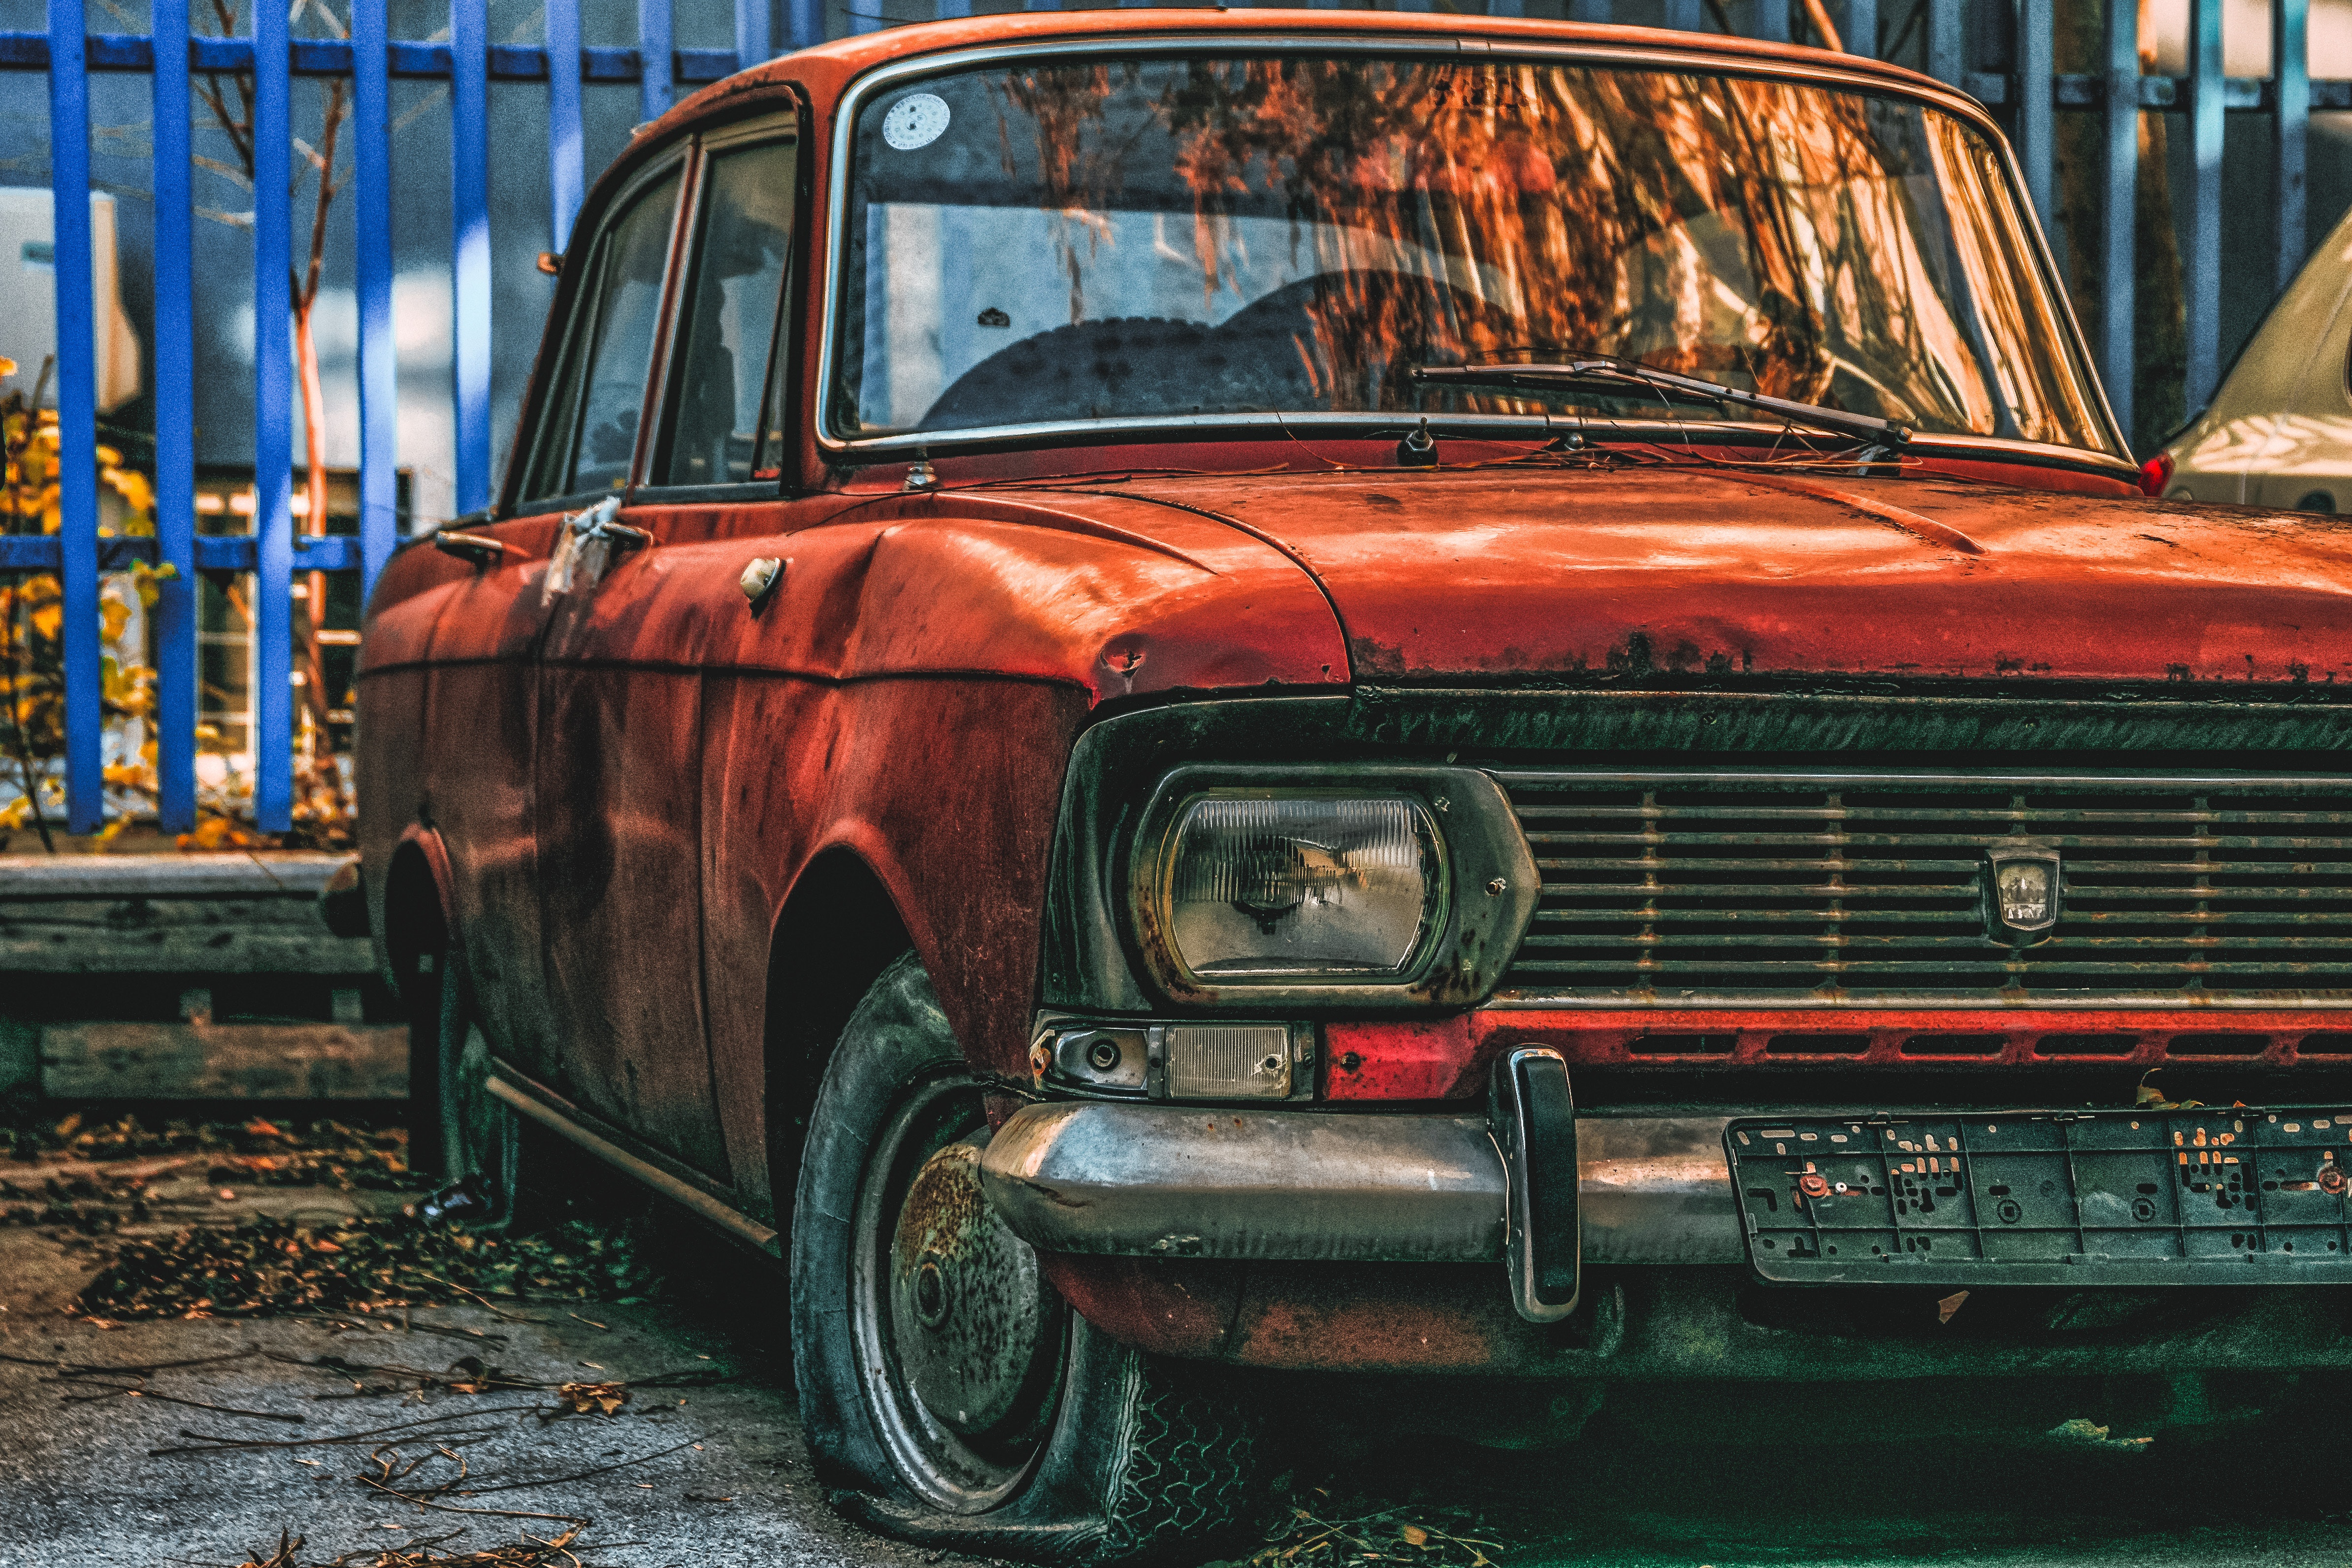 Classic Brown Vehicle Parked Beside Trees 183 Free Stock Photo